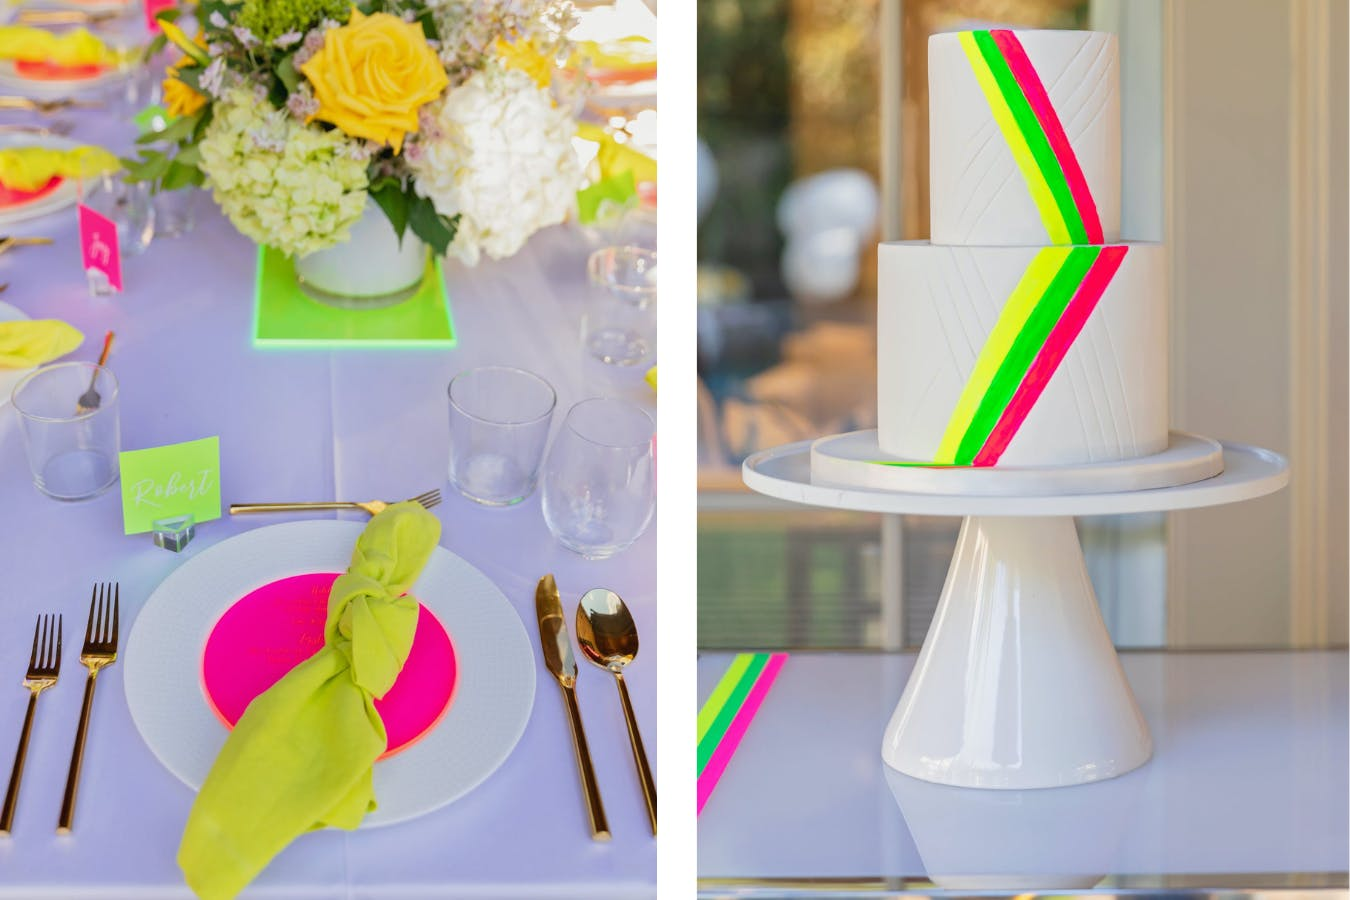 Neon-Themed Birthday Party Cake and Place Setting | PartySlate